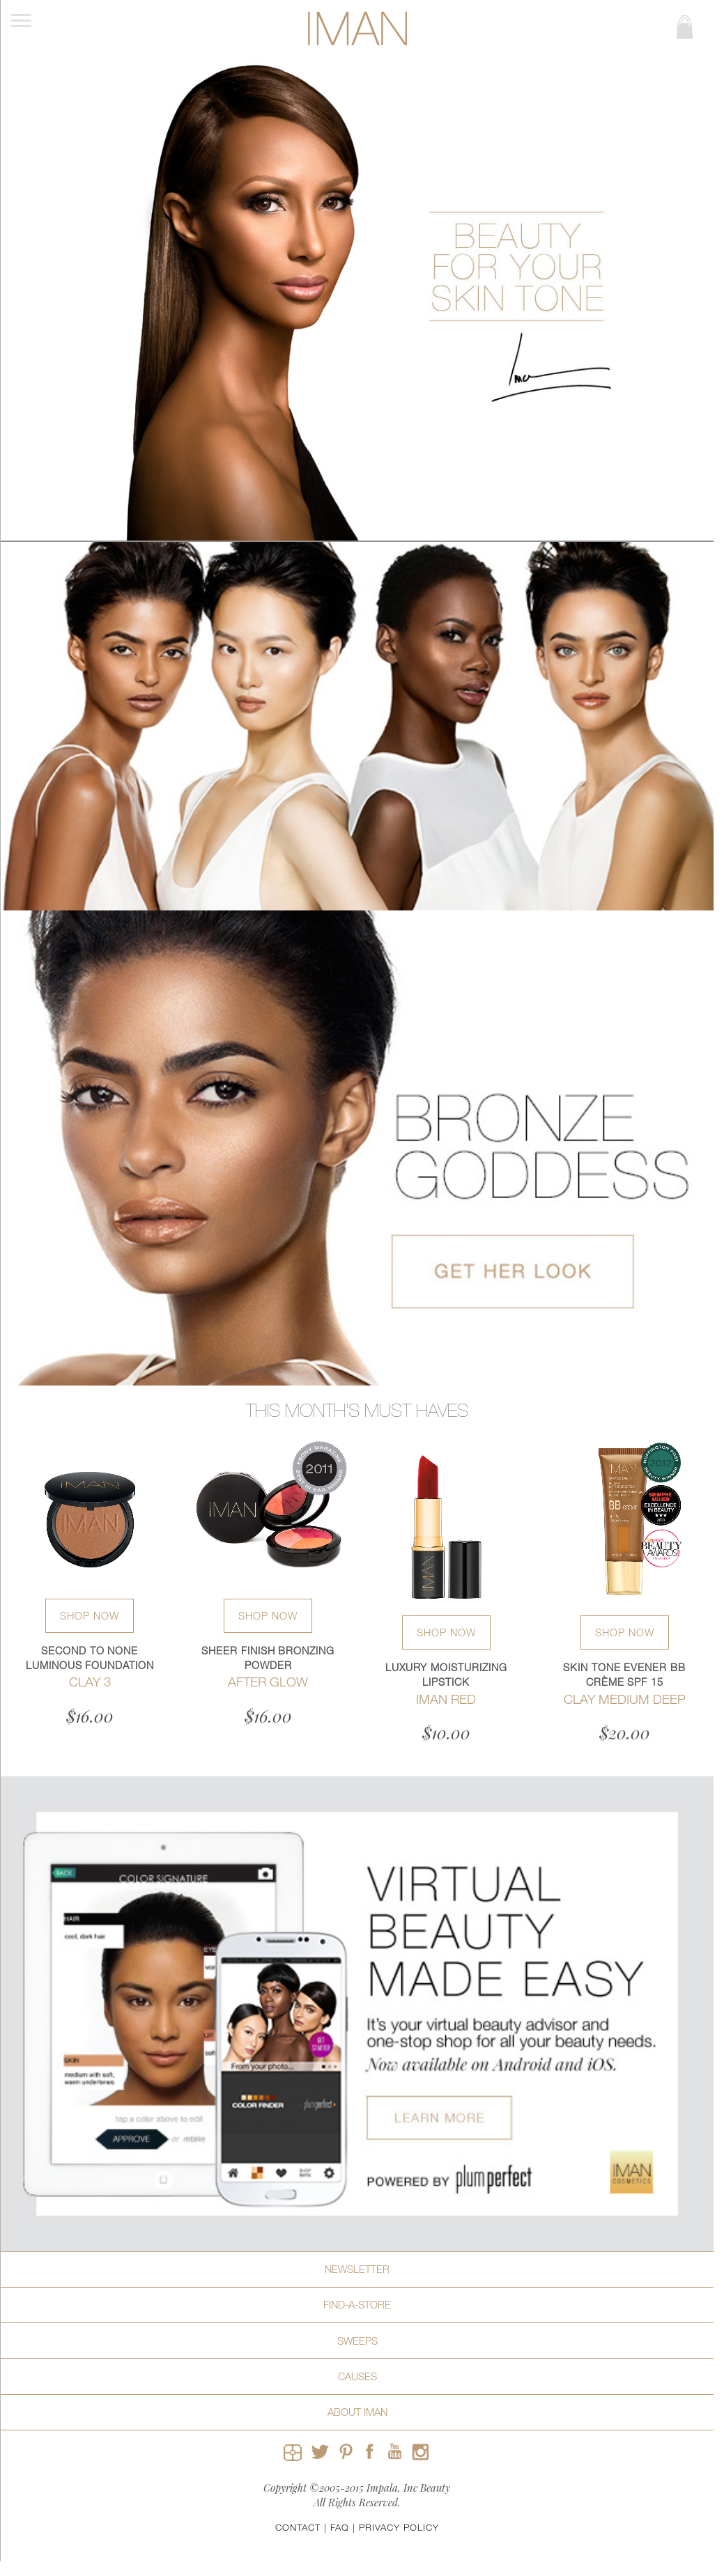 To acquire Beauty News: Iman Cosmetics To Launch CC Cream Collection and App picture trends